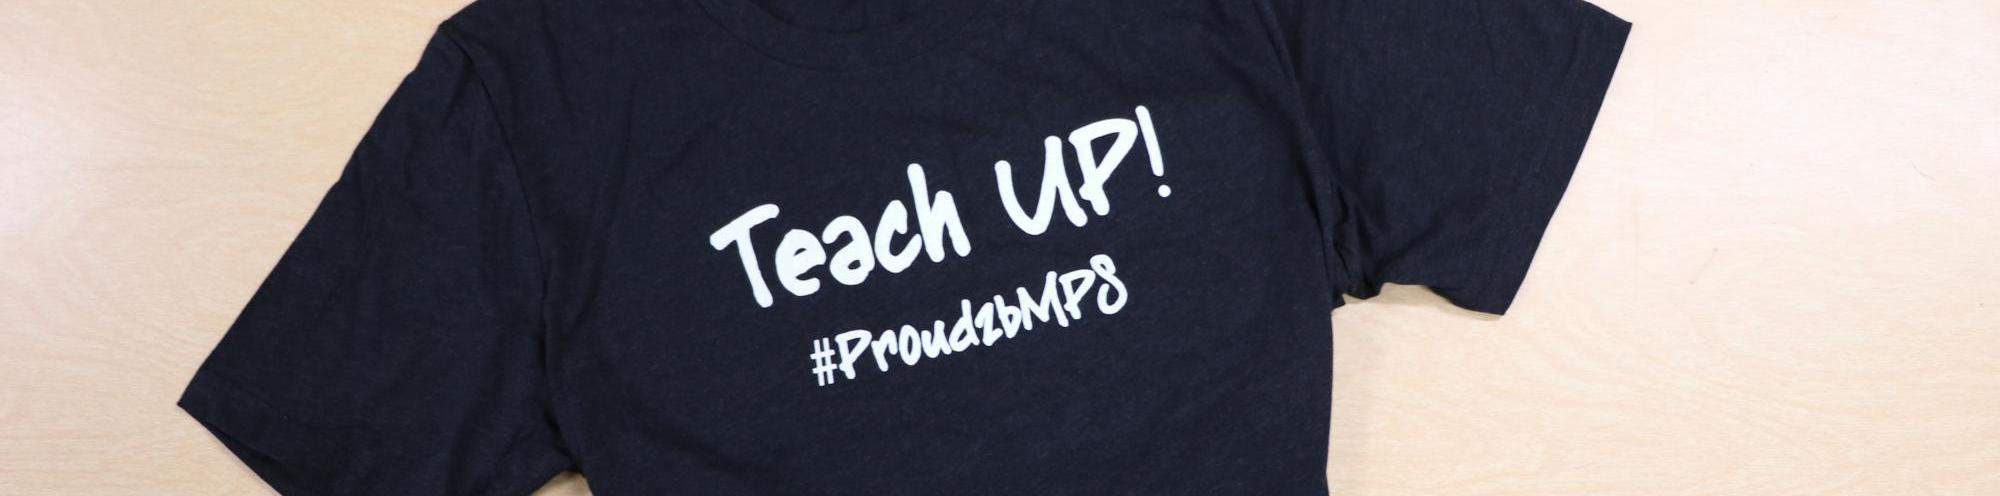 Teach UP t-shirt